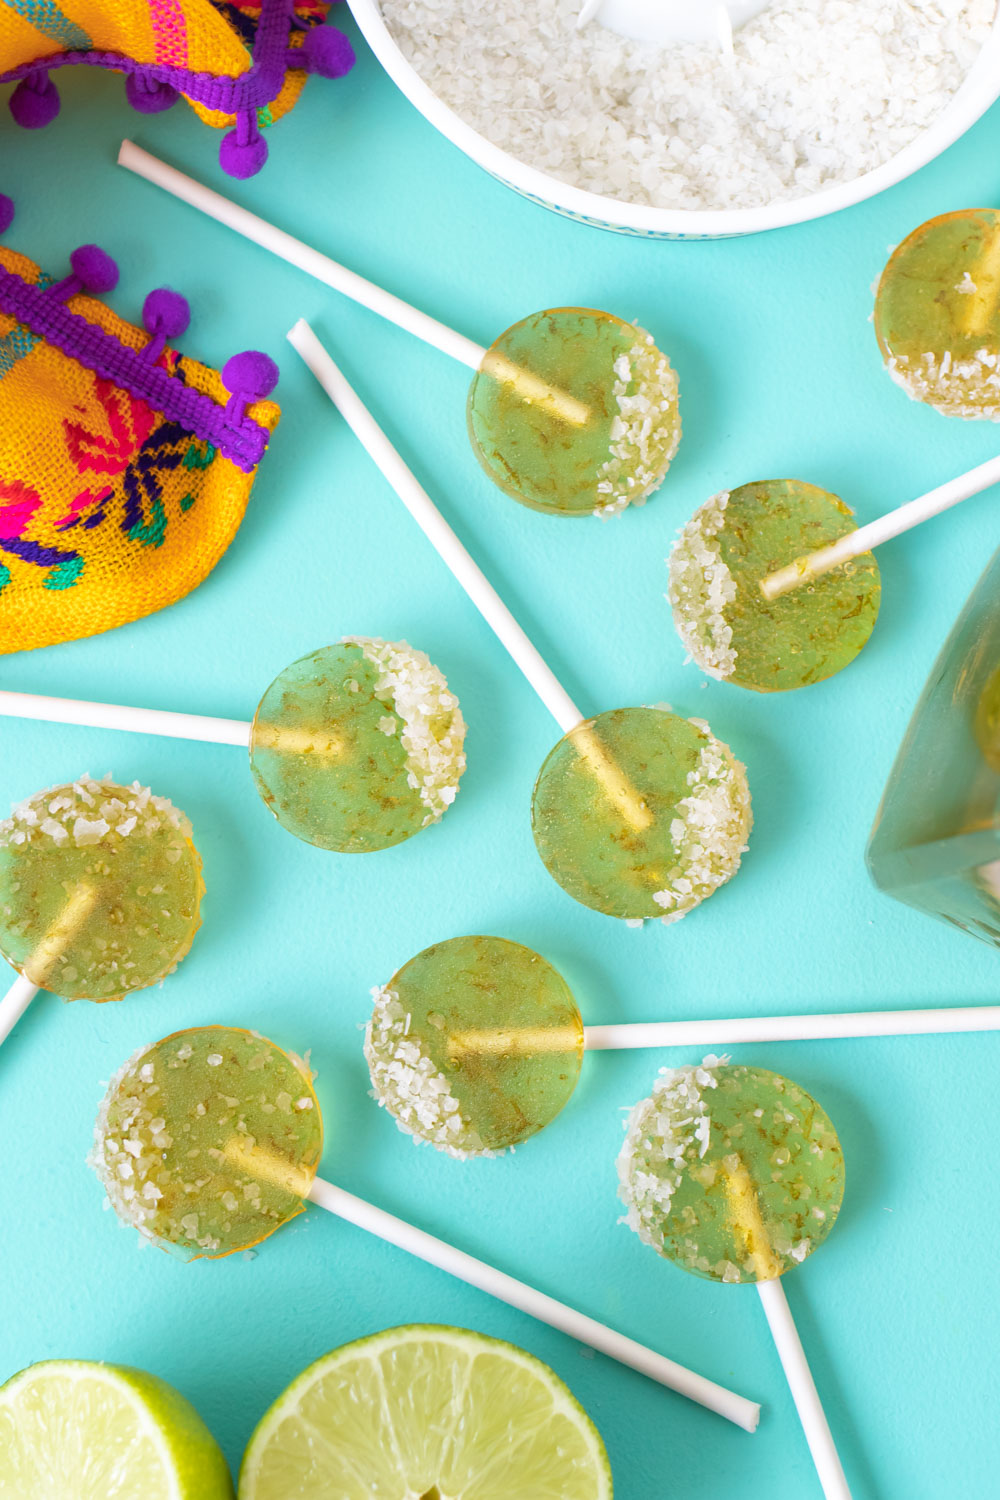 multiple lollipops arranged on teal background